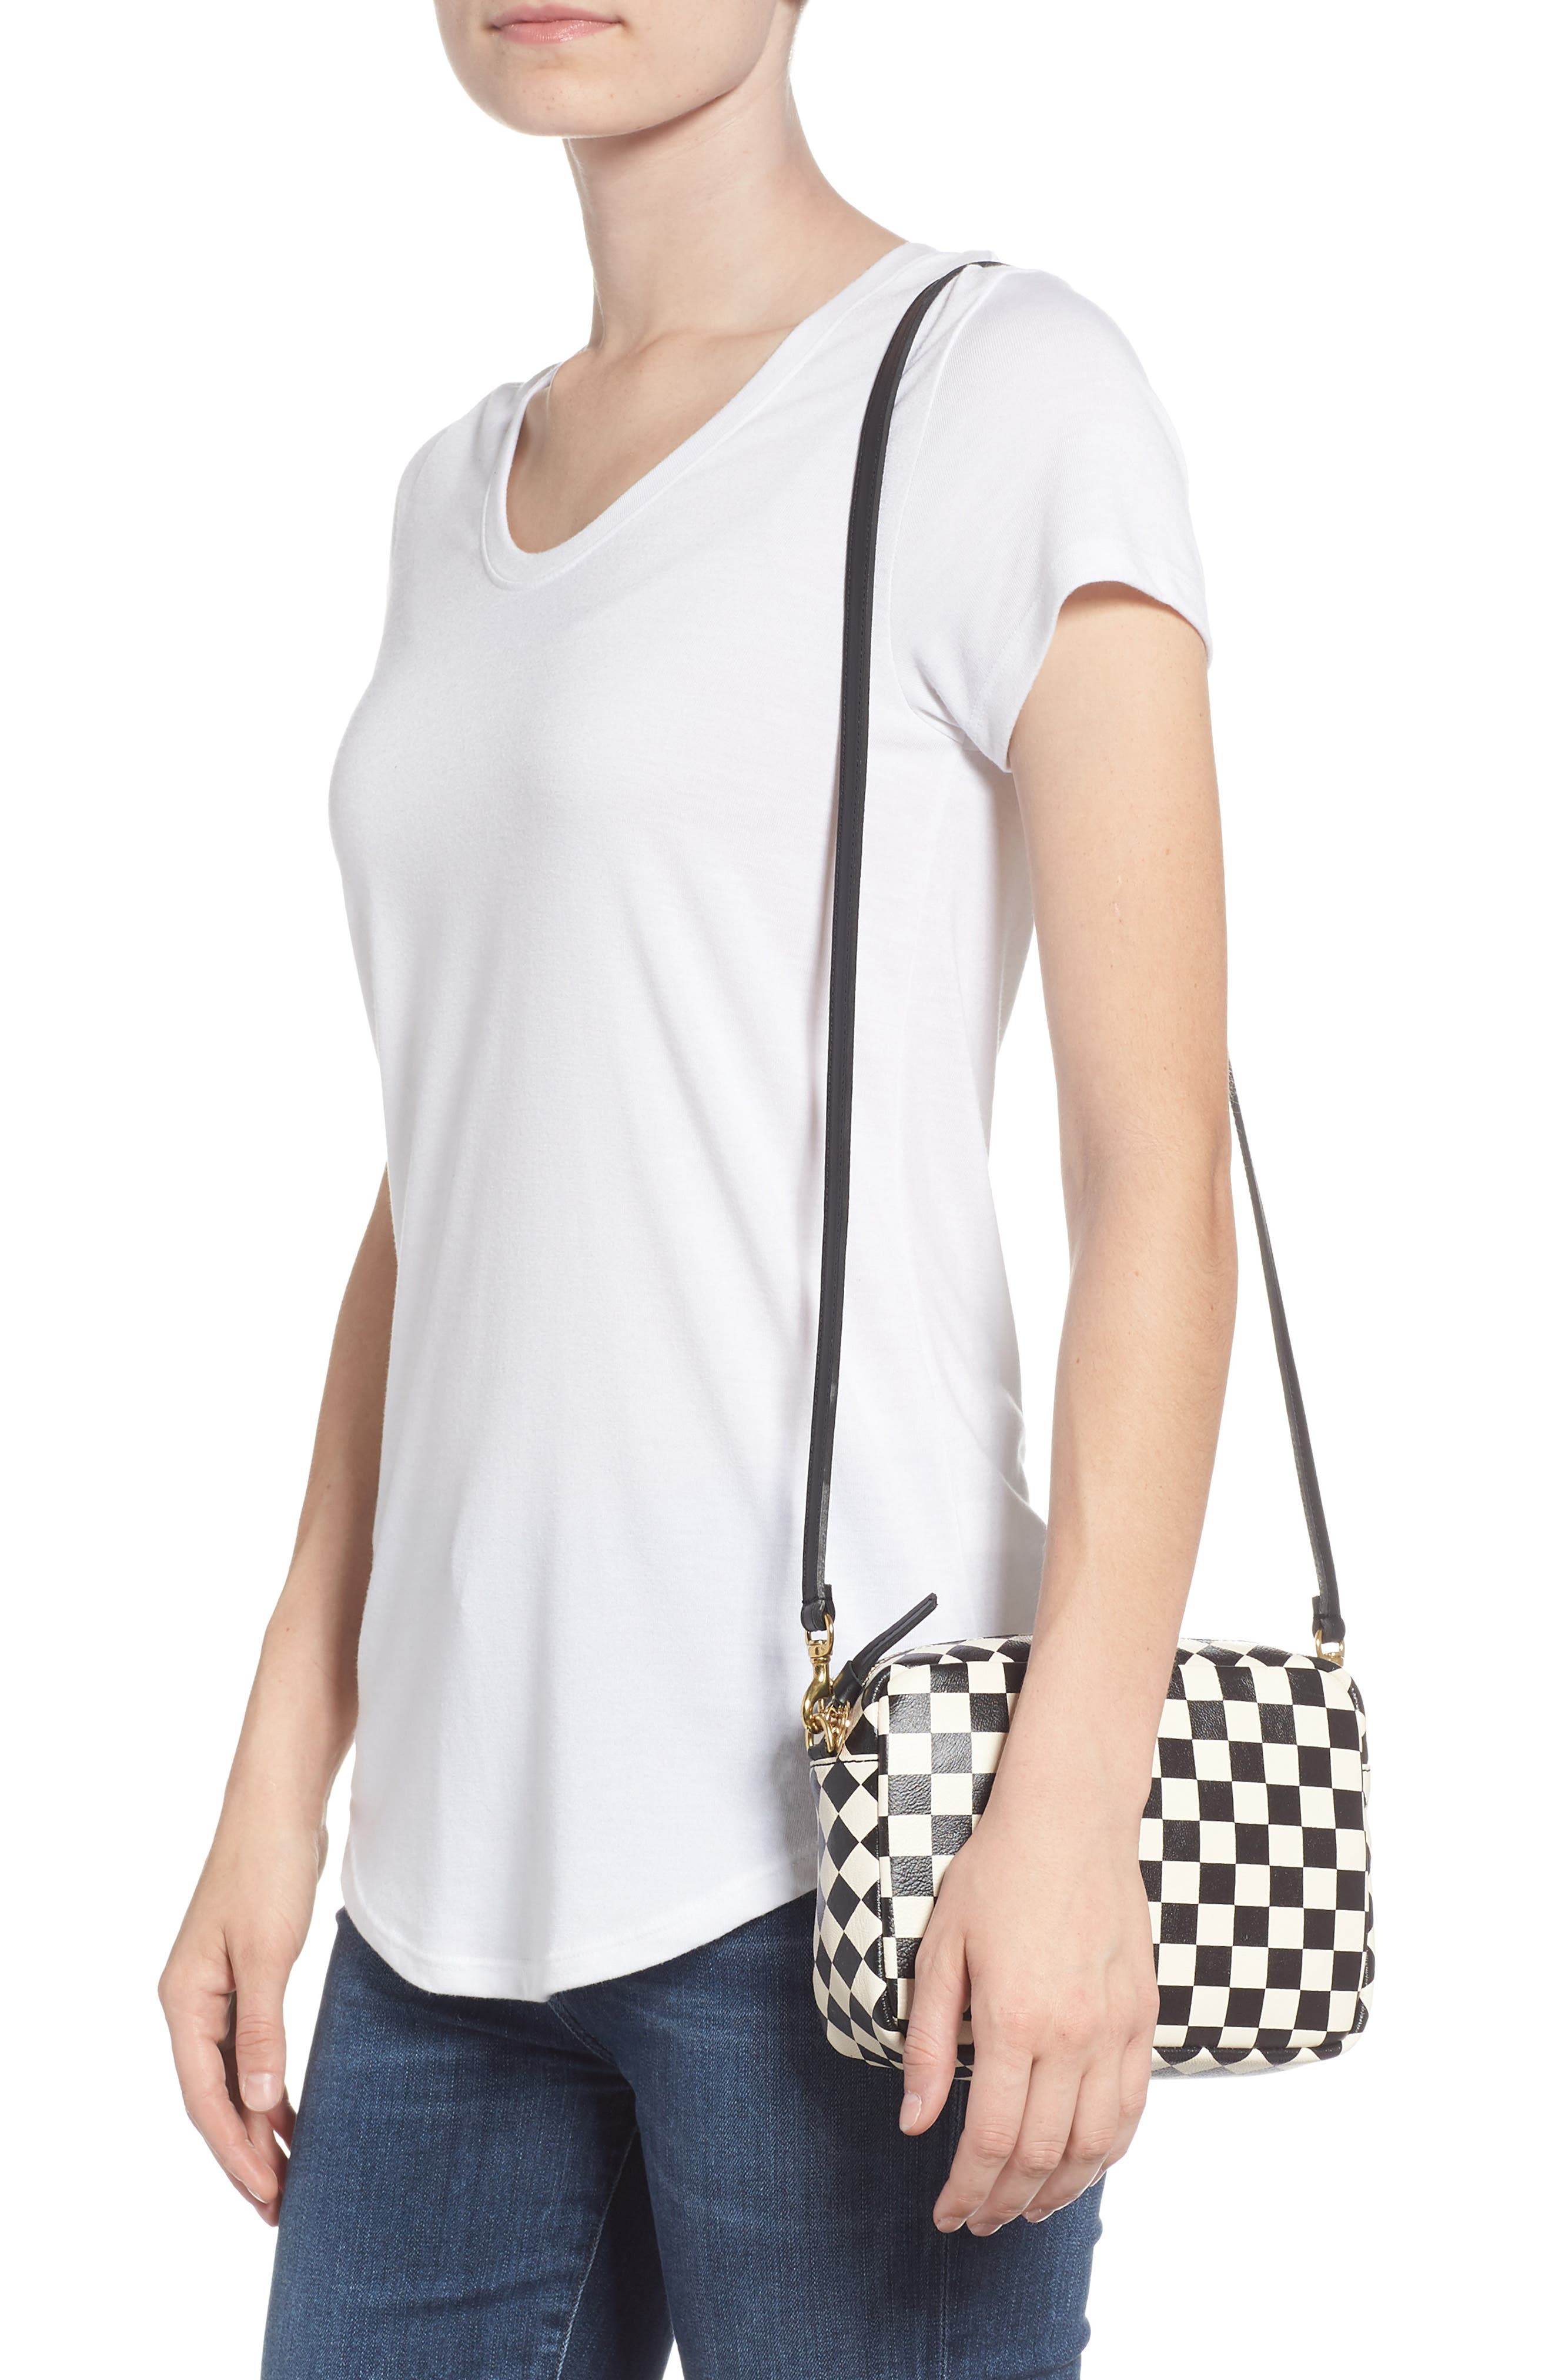 Midi Sac Check Leather Shoulder Bag,                             Alternate thumbnail 2, color,                             CREAM/ BLACK CHECKERS